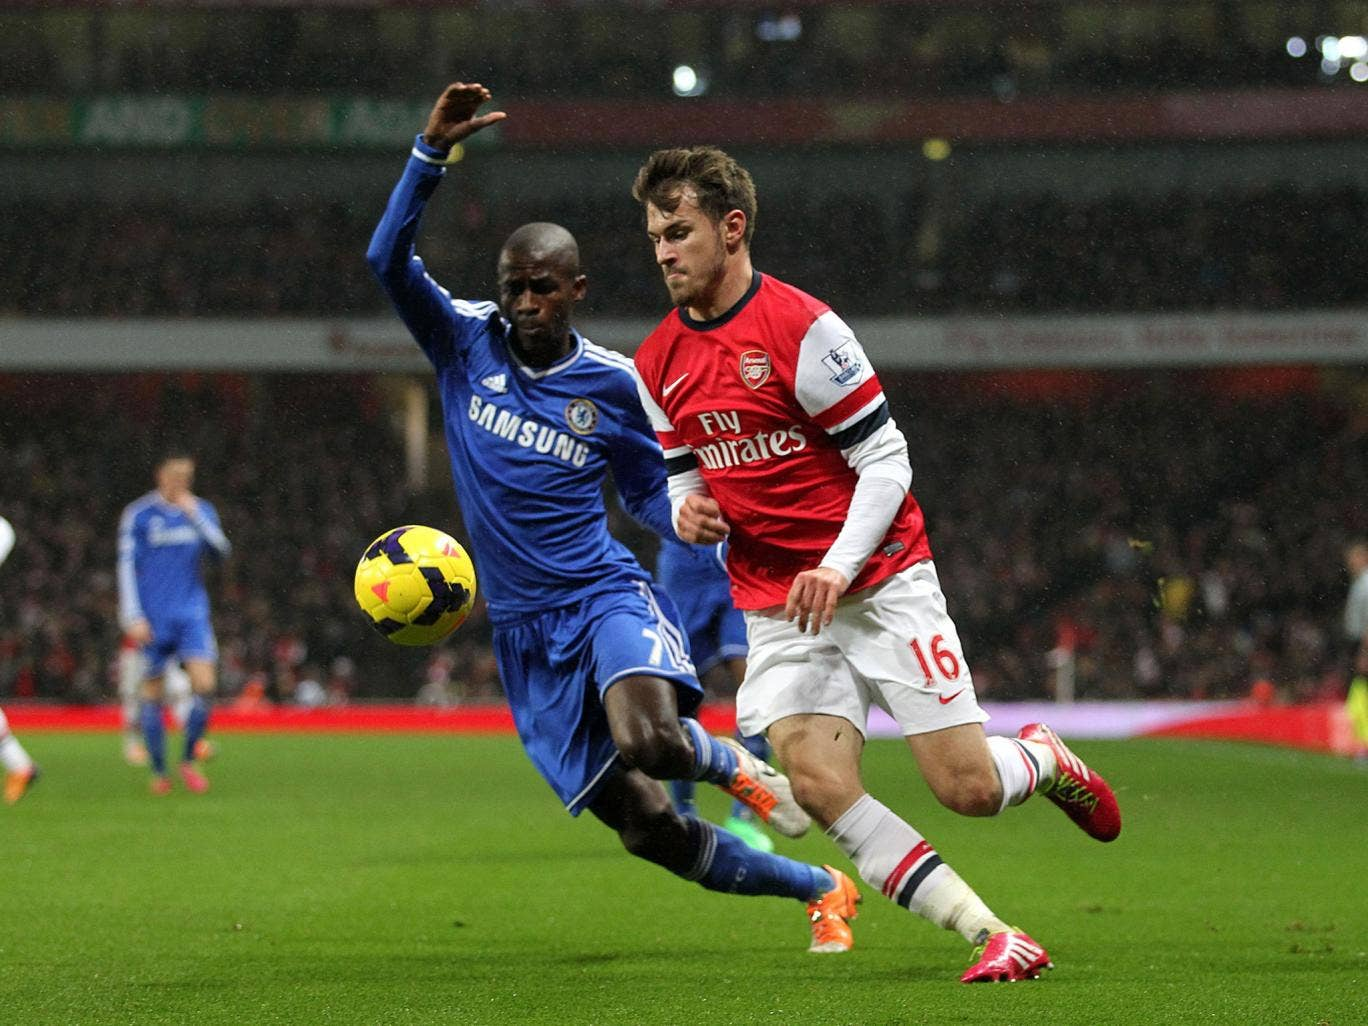 Arsenal's Aaron Ramsey tangles with Chelsea's Ramires during the draw at the Emirates